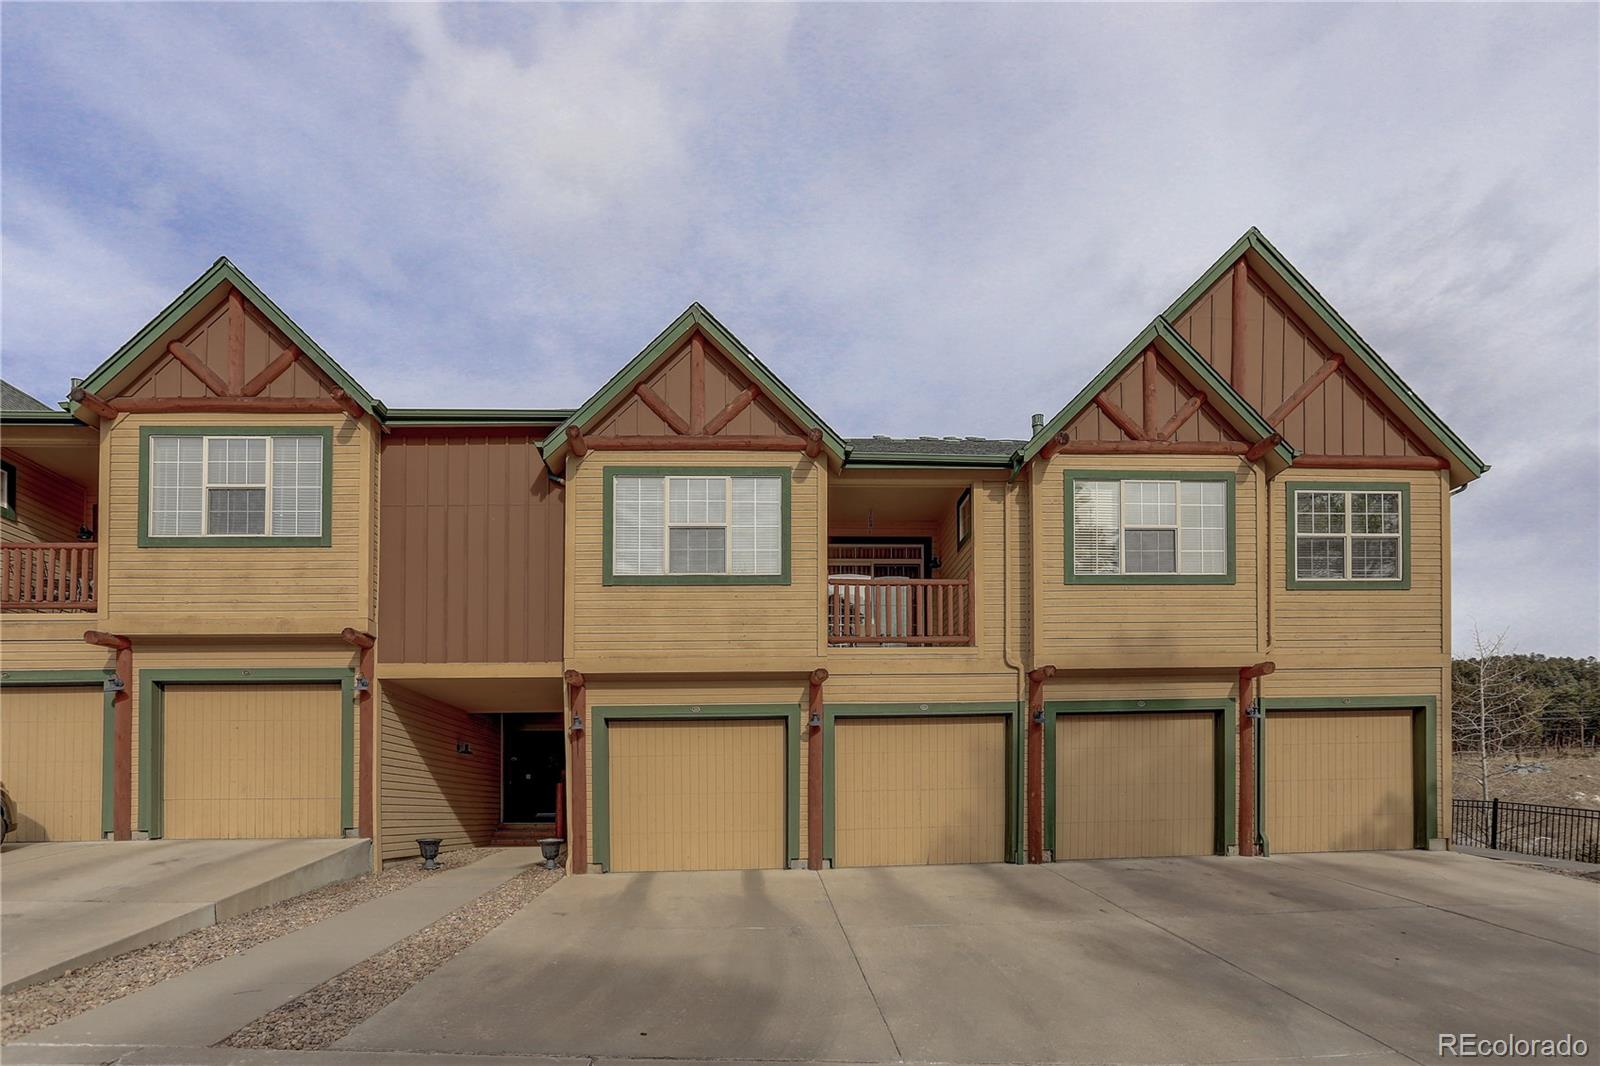 31101 Black Eagle Drive #1, Evergreen, CO 80439 - Evergreen, CO real estate listing